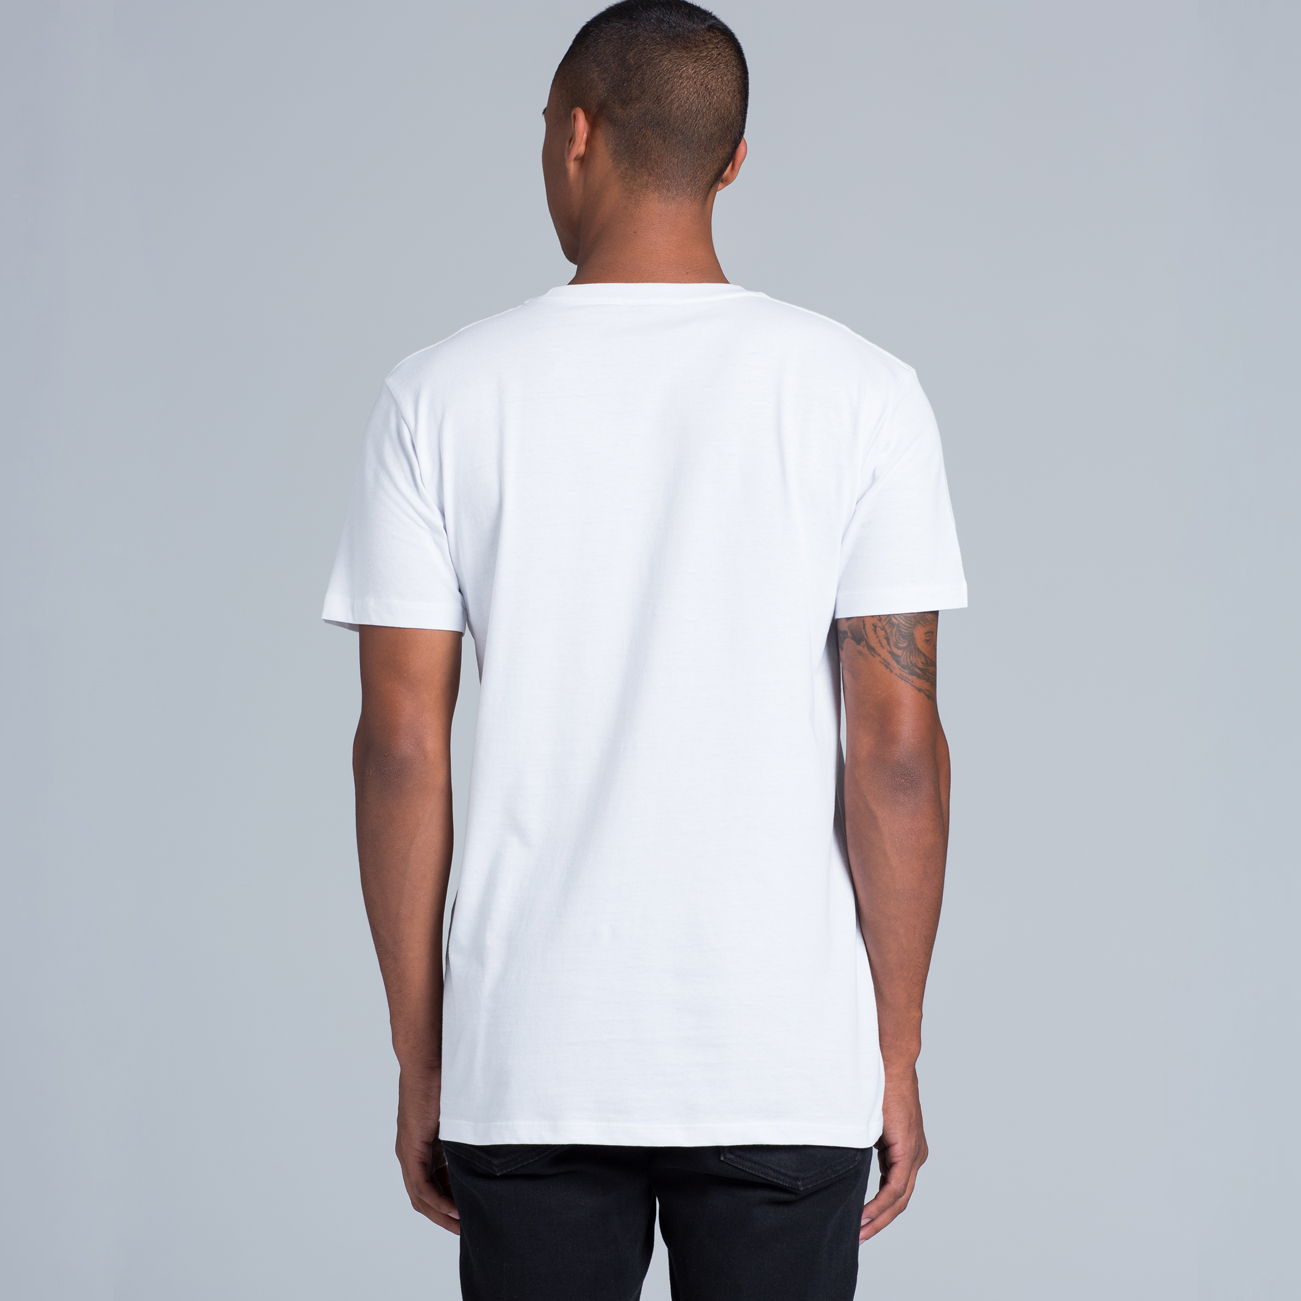 Design your own t shirt mens - More Images